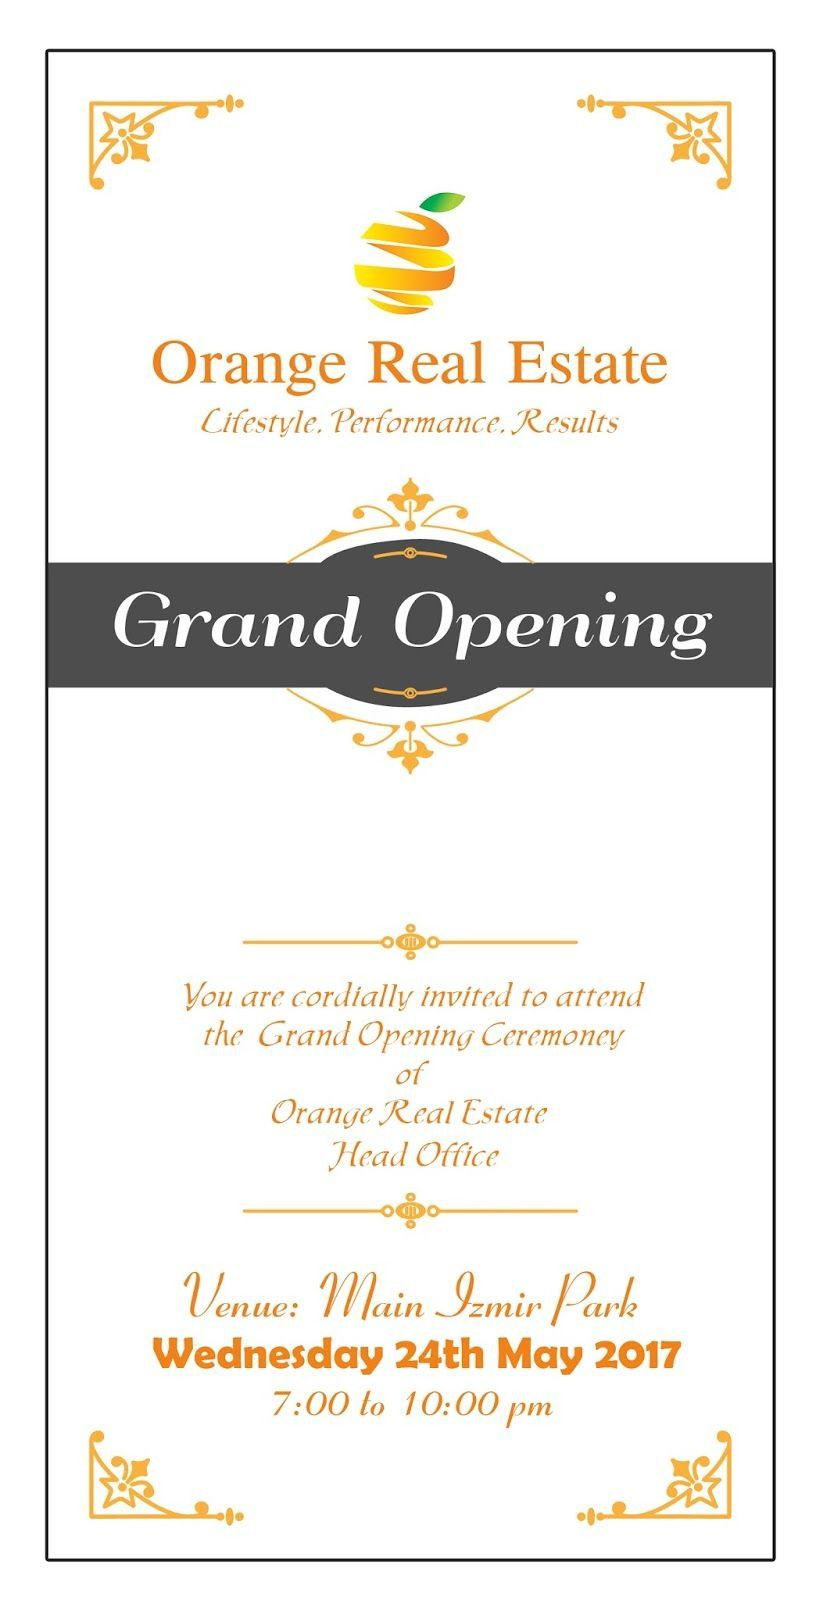 Grand Opening Invitation Wording Shop Opening Invitation Card Grand Opening Invitations Invitation Card Design